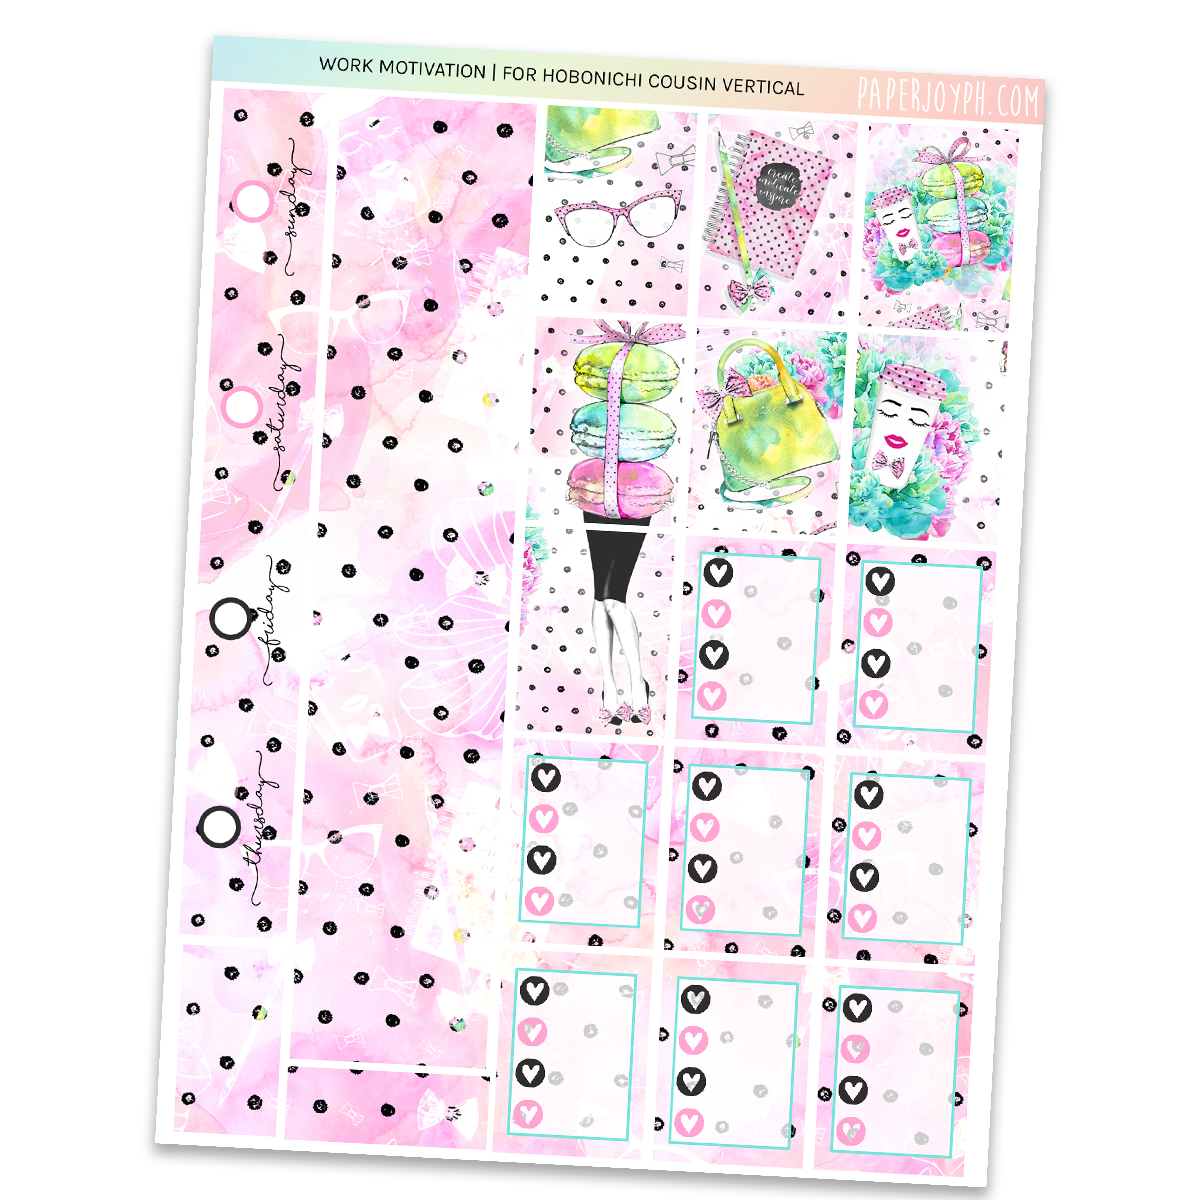 HOBONICHI COUSIN | VERTICAL STICKER KIT | Work Motivation